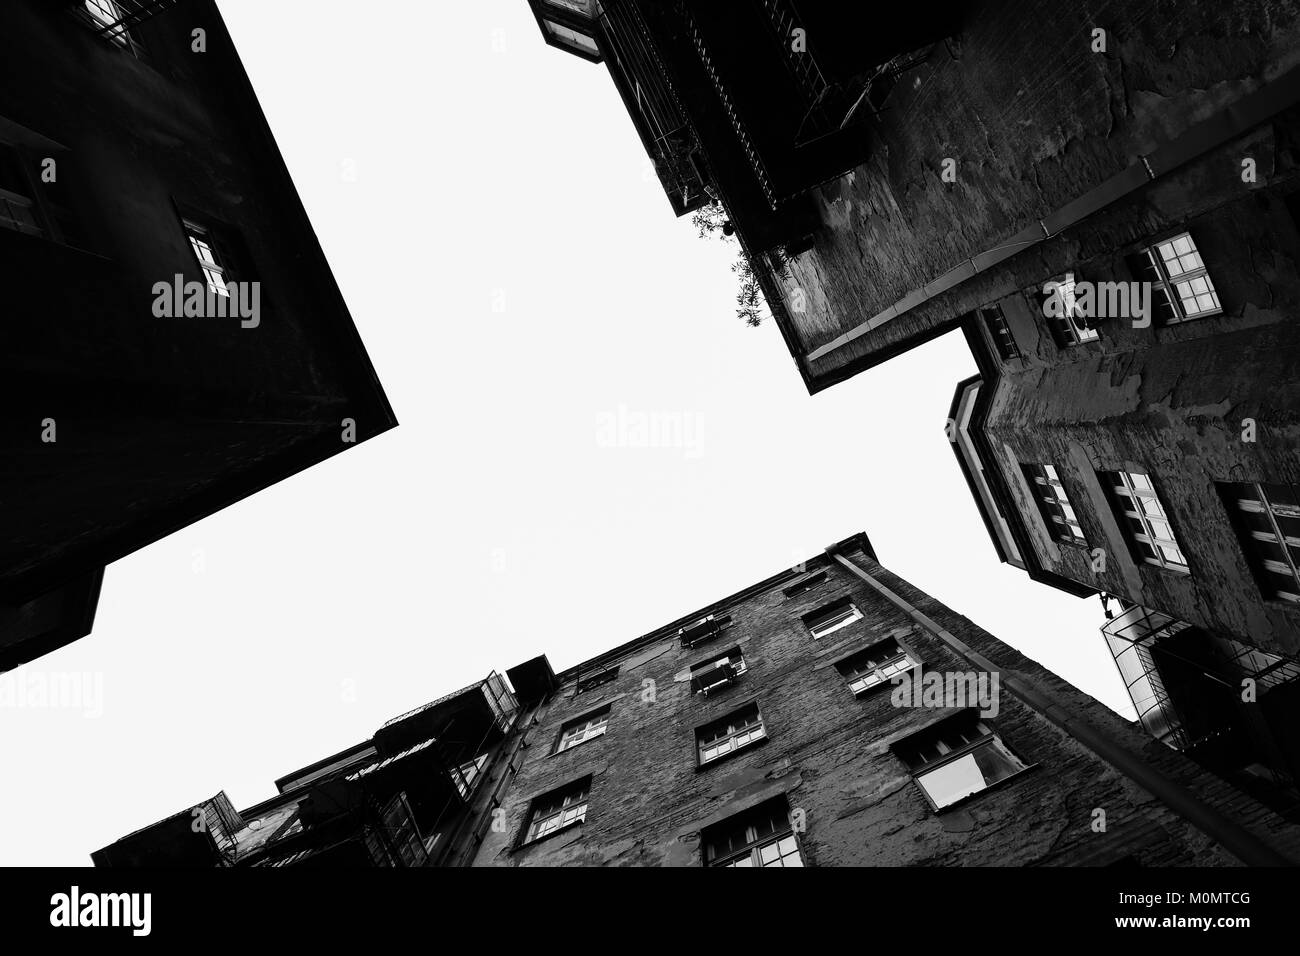 Black and white photo of a building captured from below. - Stock Image